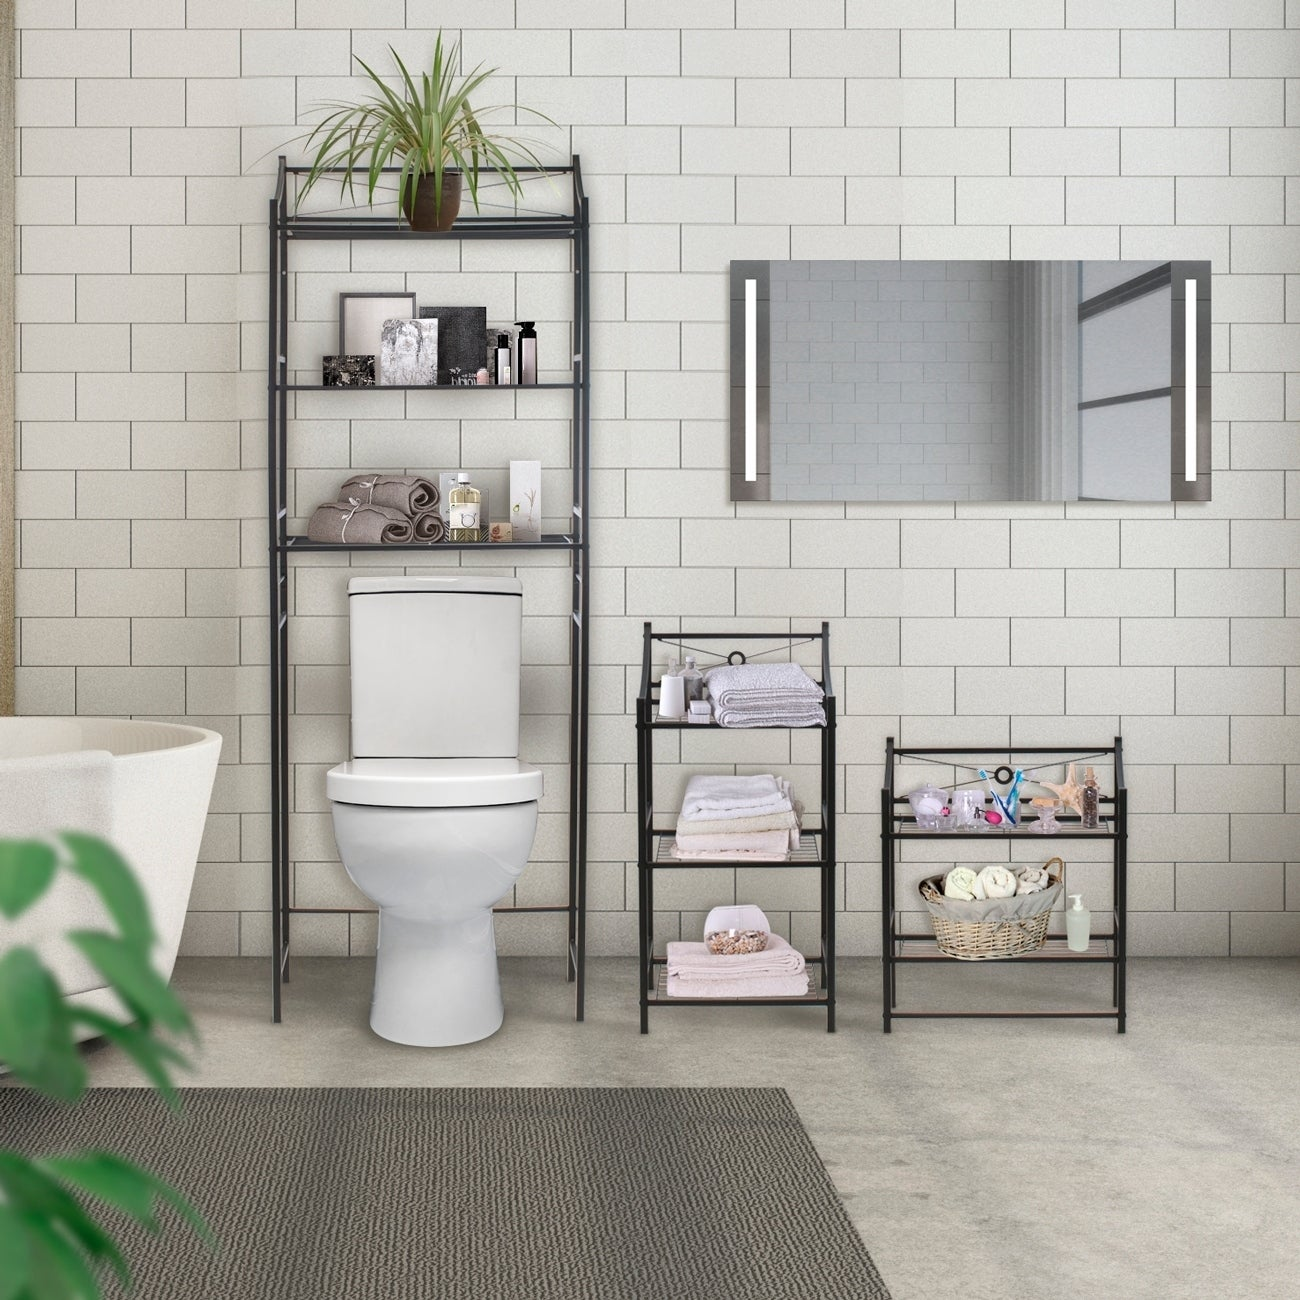 bathroom organization shelving our best floating shelves for towels furniture covered storage ercol wickes corner ladder bookshelf custom closet systems kitchen racks built hidden